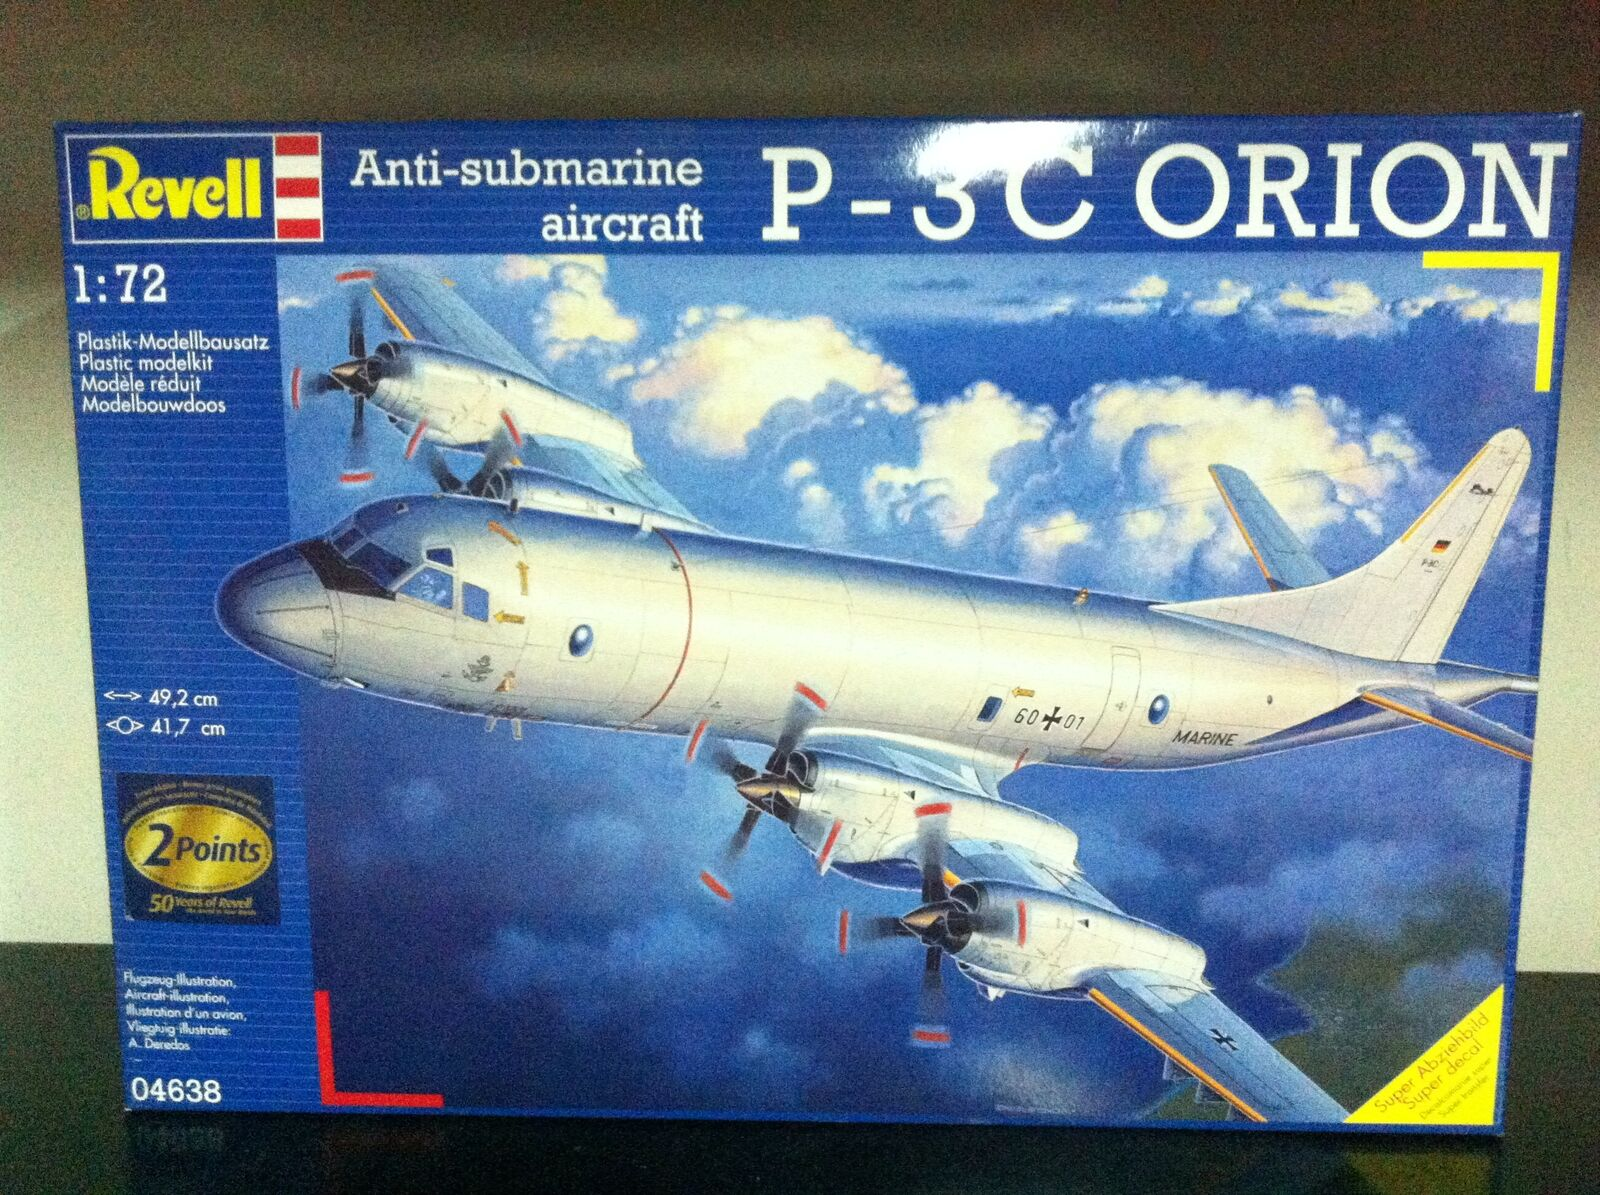 Revell Kit di Montaggio 1 72 4638 Anti-Submarine Aircraft P-3 C ORION MIB, 2006